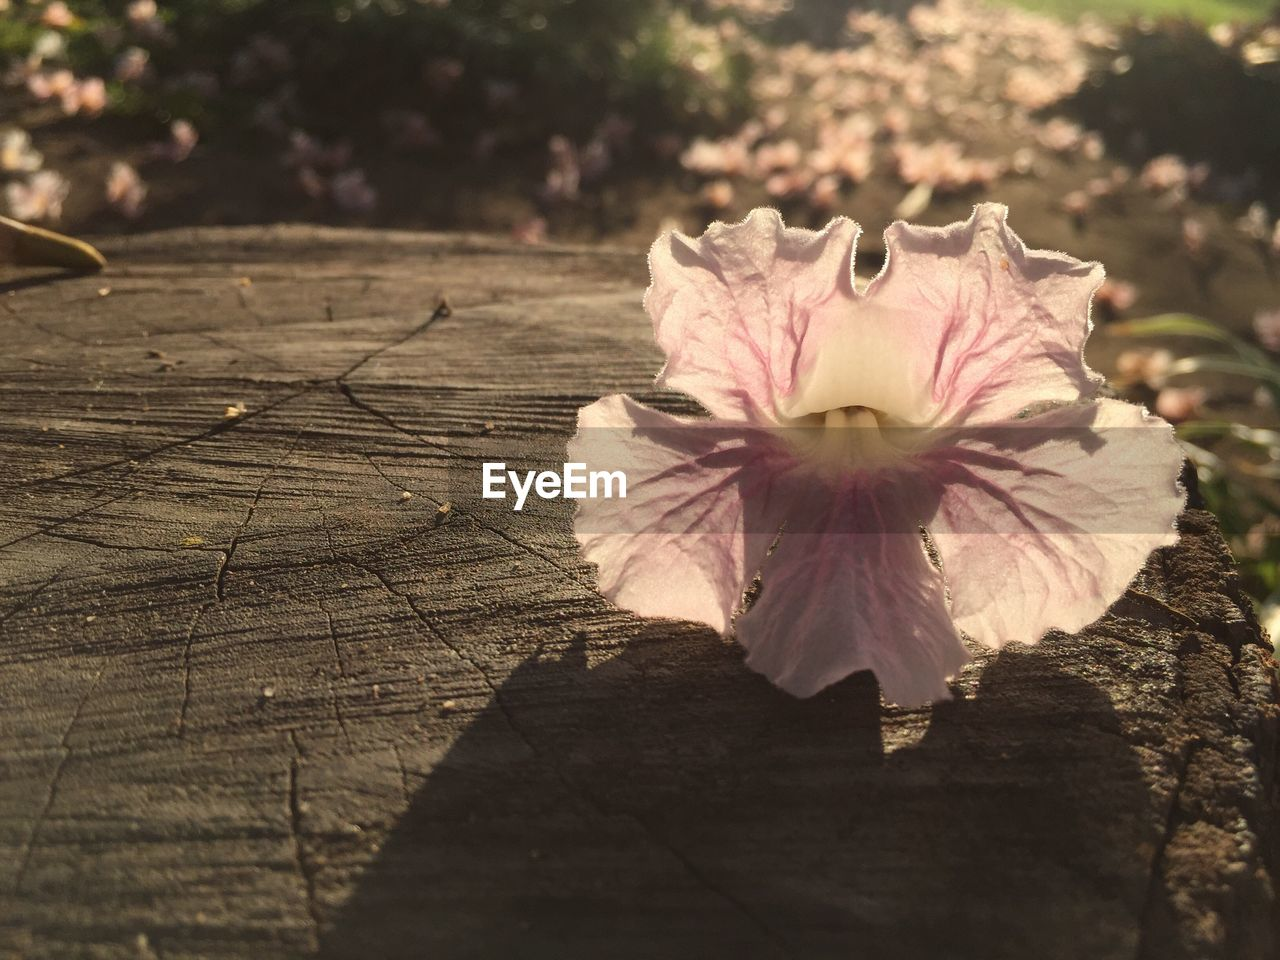 flower, petal, fragility, nature, flower head, beauty in nature, sunlight, close-up, growth, outdoors, no people, day, freshness, hibiscus